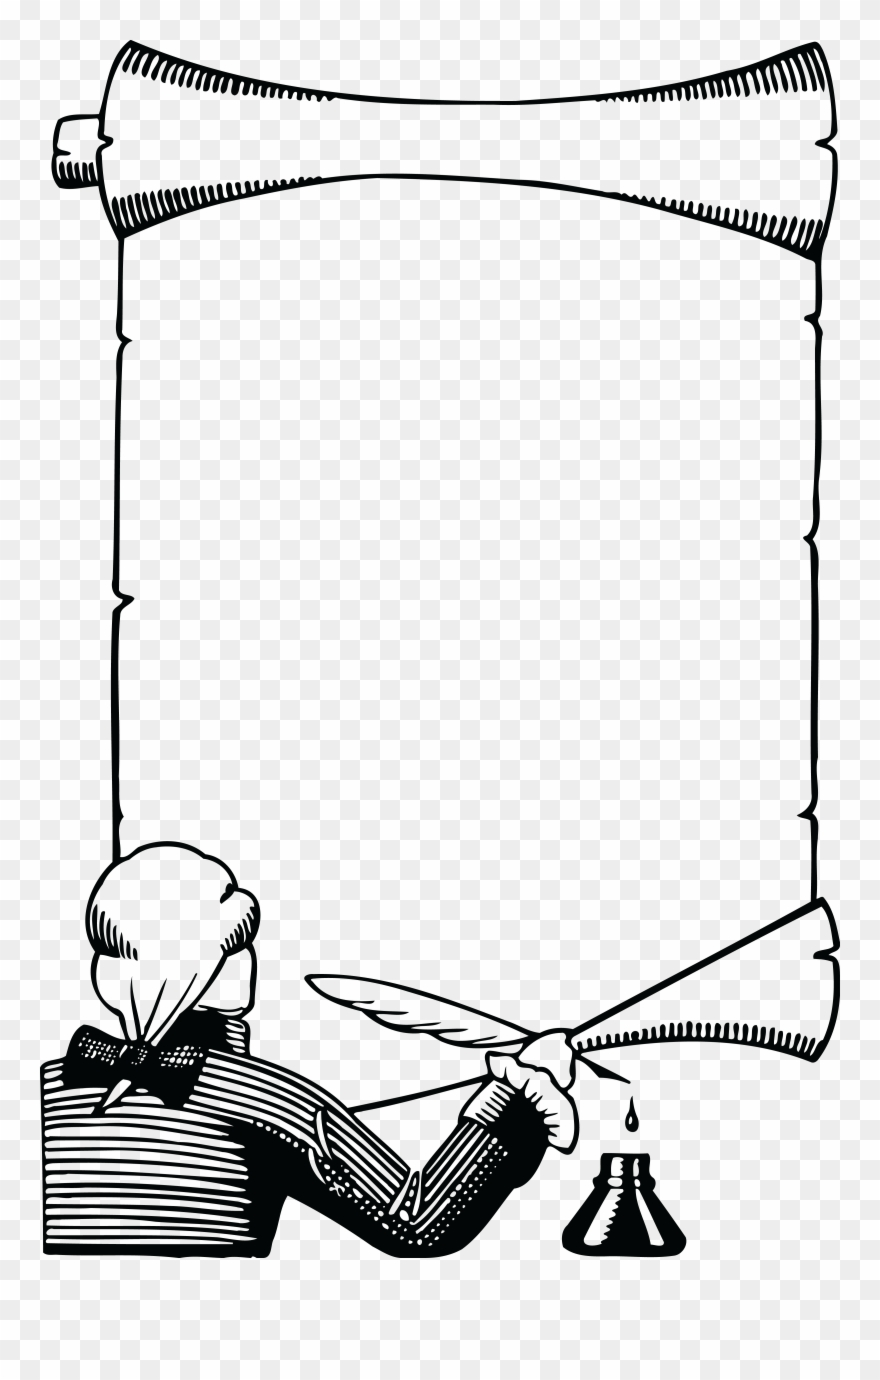 hight resolution of free scroll clipart ideal vistalist co recent scroll clipart black and white png transparent png